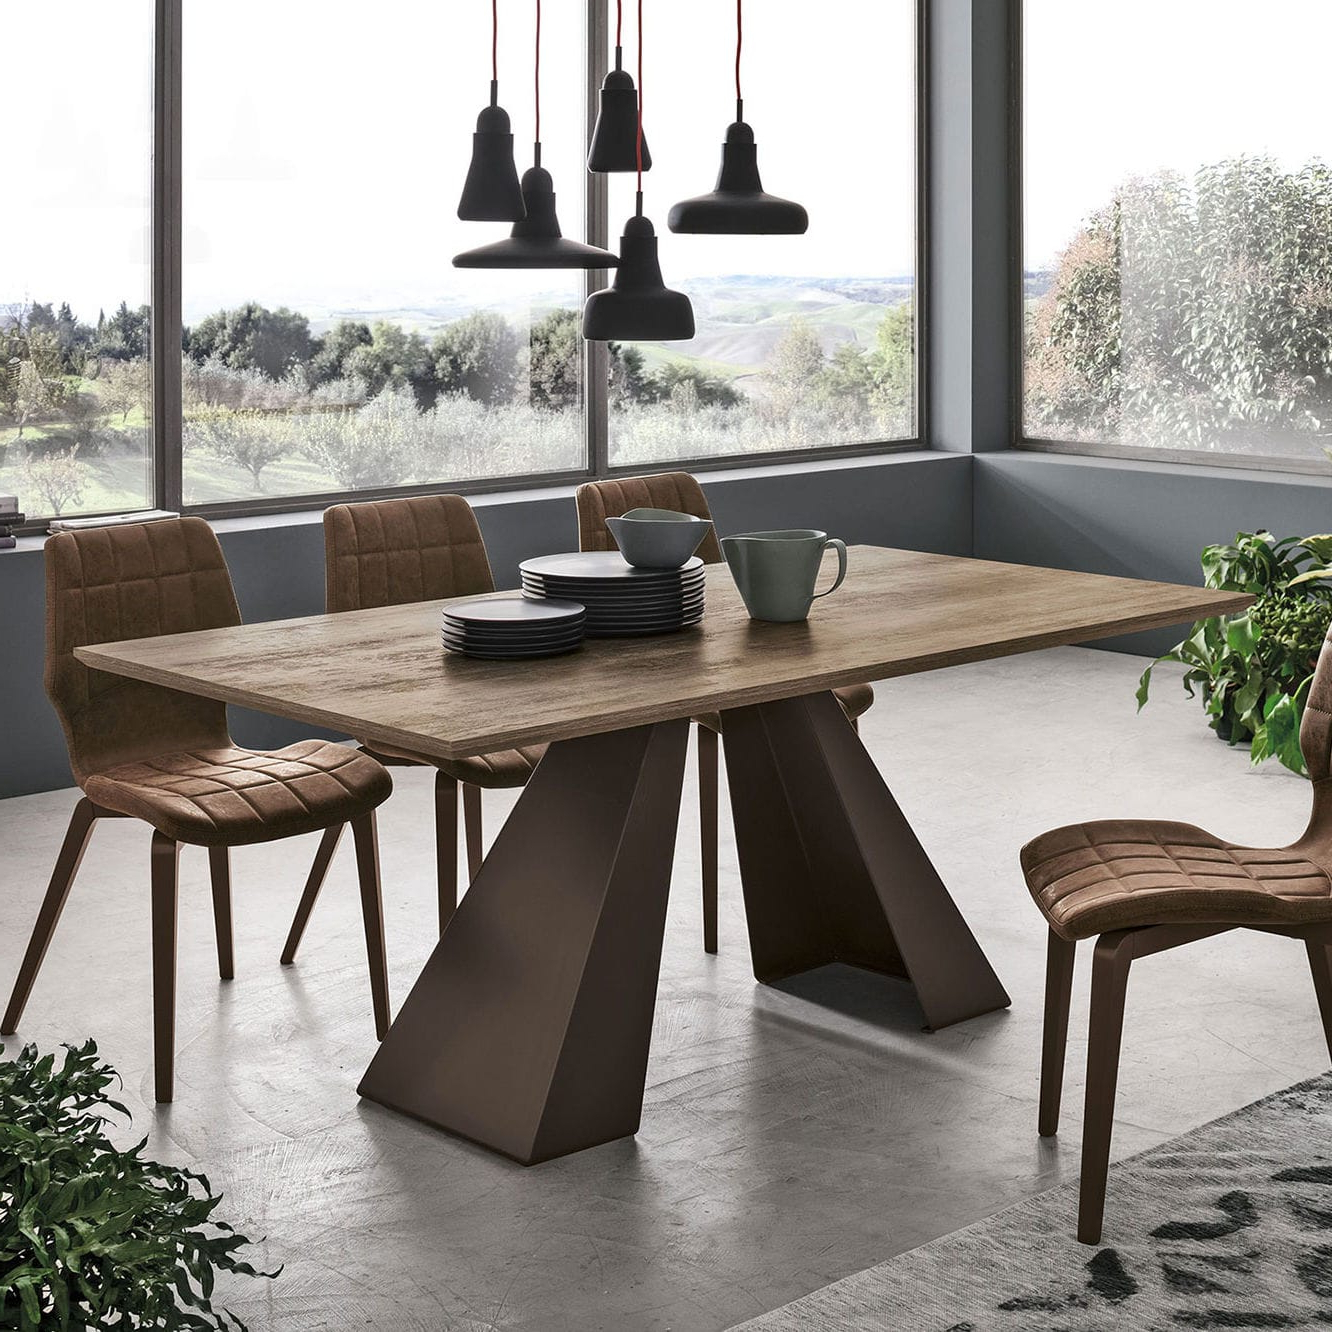 Dining Tables With Brushed Stainless Steel Frame inside Most Recently Released Contemporary Dining Table / Wood Veneer / Brushed Metal Base